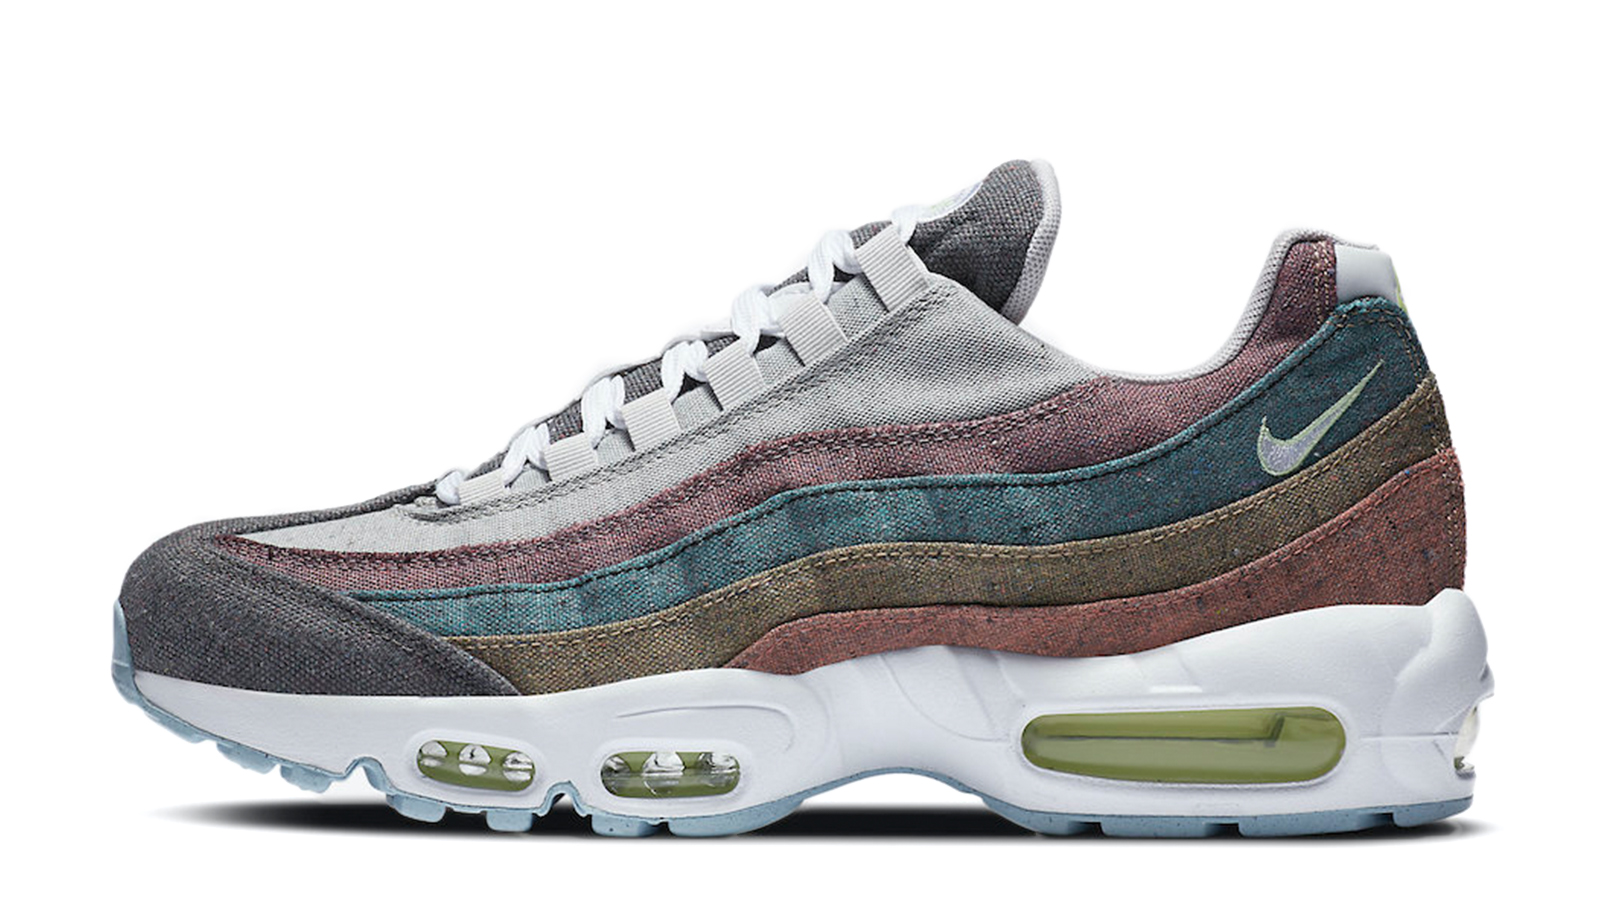 Nike Air Max 95 NRG Recycled Canvas CK6478-001